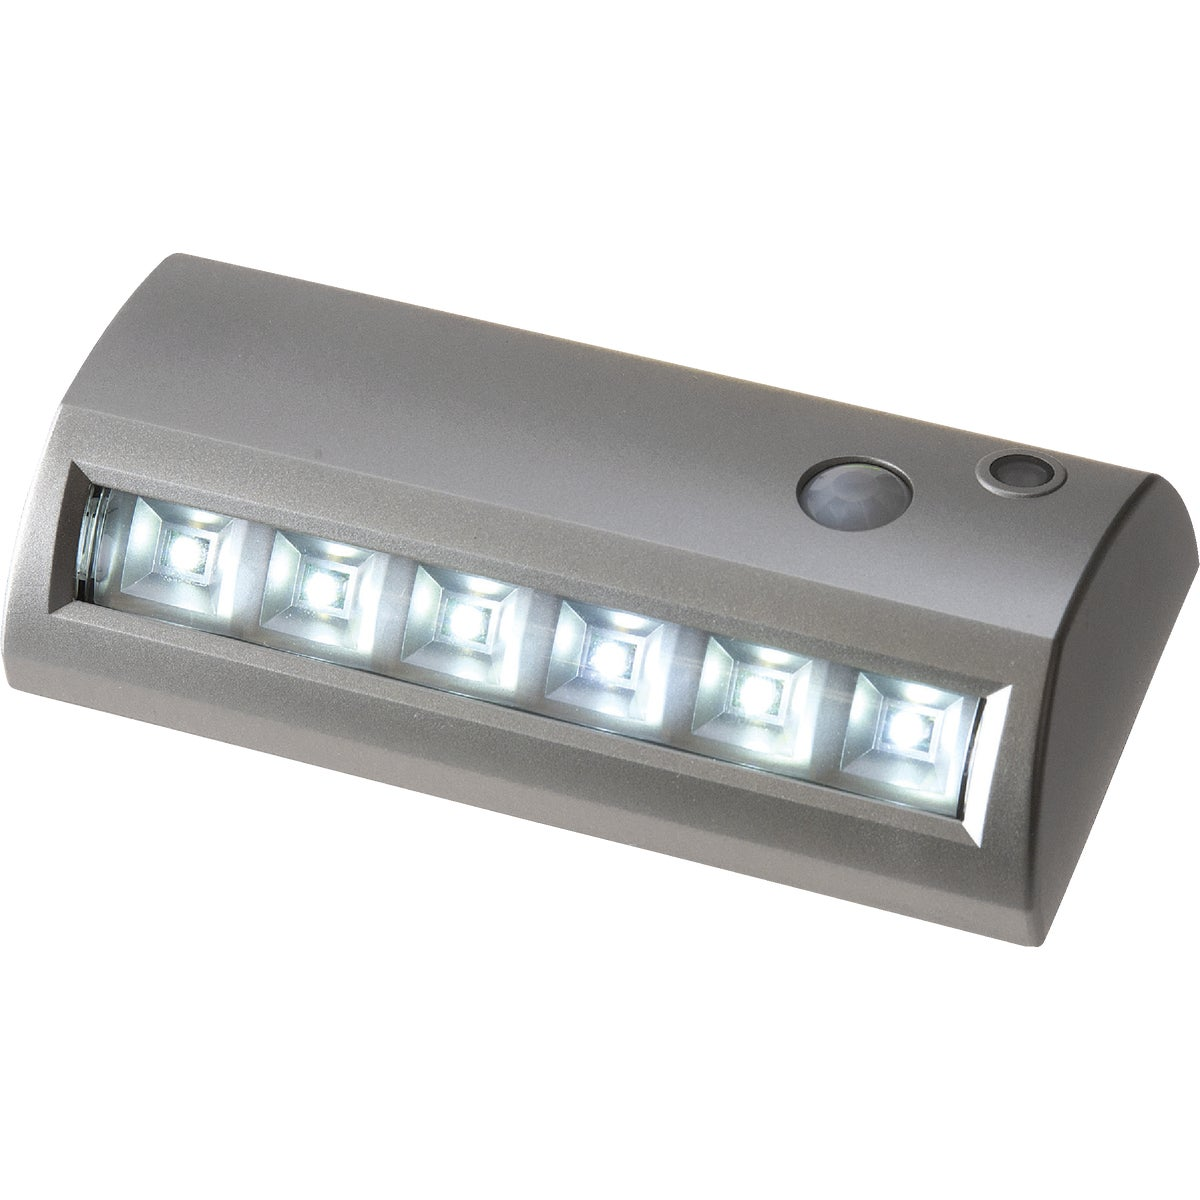 6 LED MOTION LIGHT - 20032-301 by Fulcrum Products, Inc